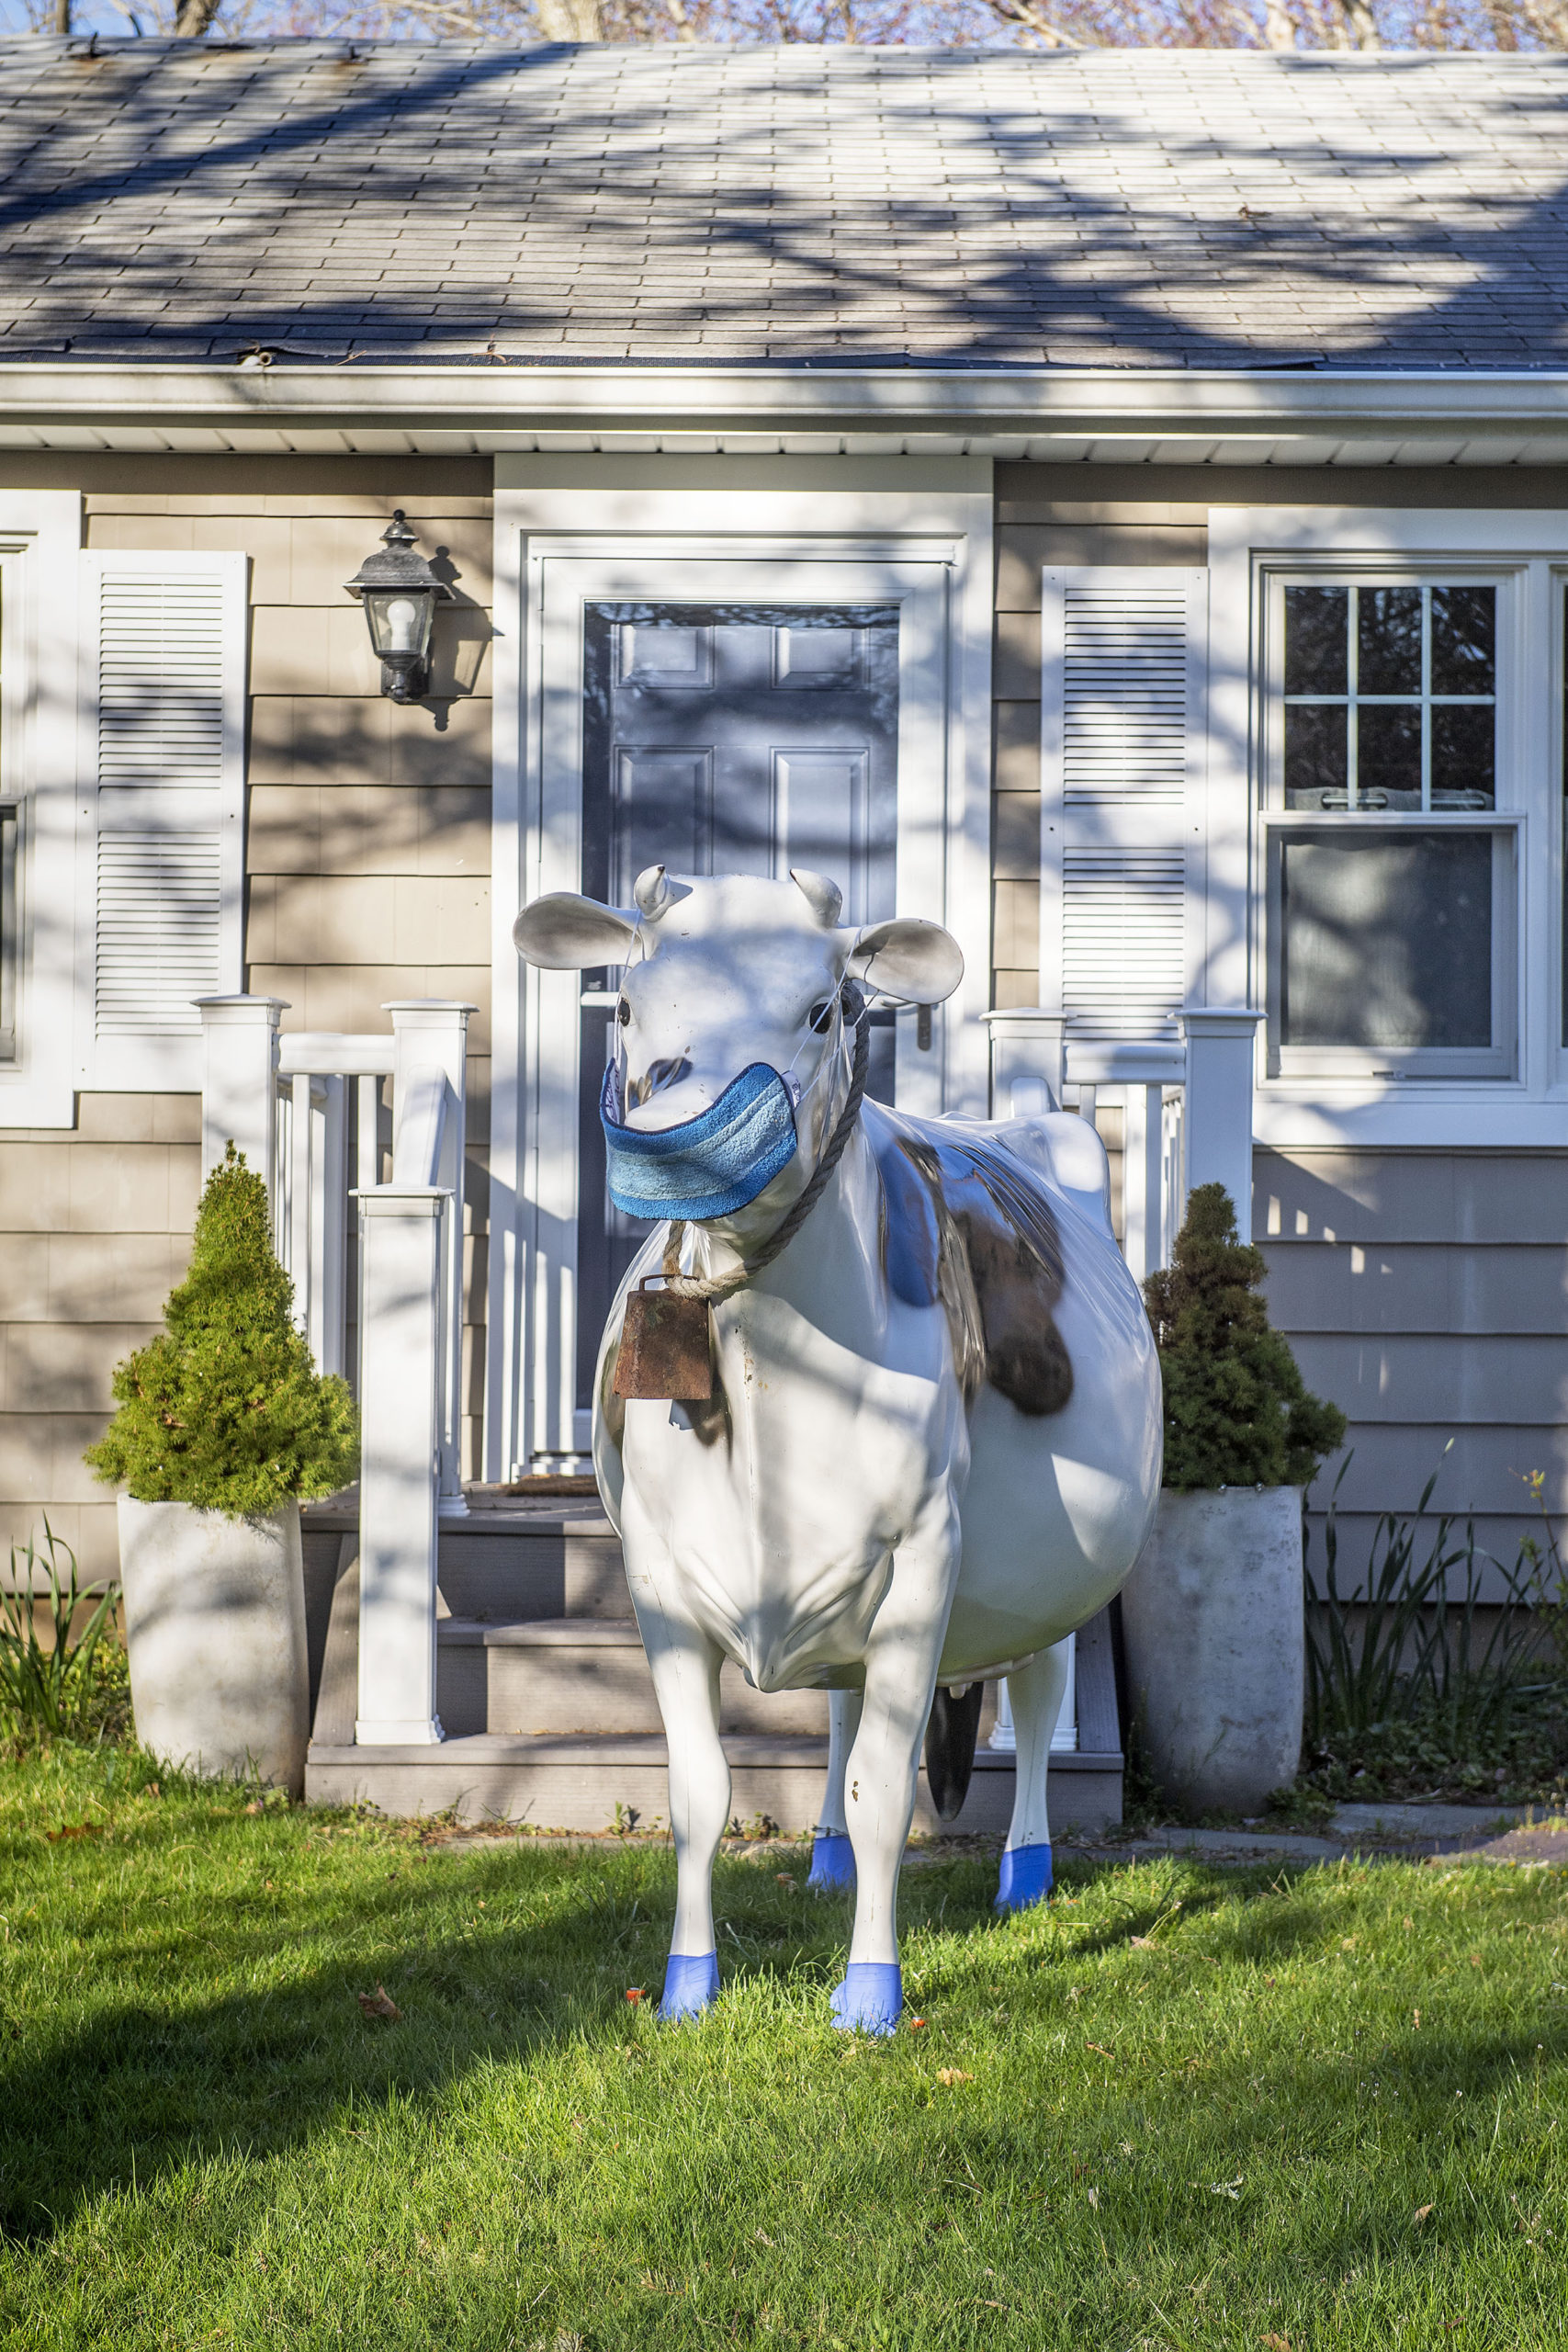 A decorative cow employing best practices on Wildwood Road in Sag Harbor.